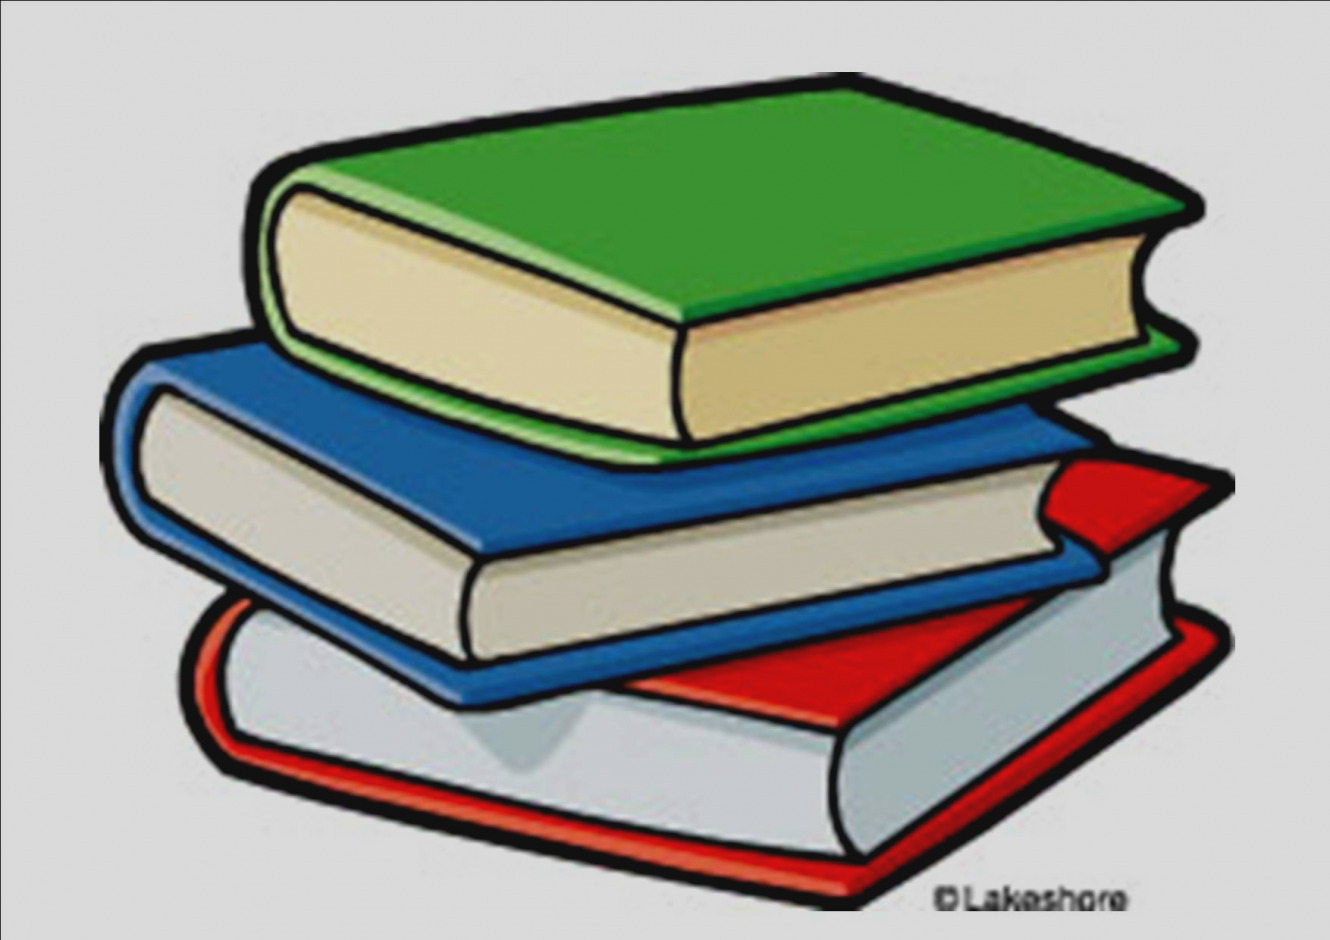 school clipart free at getdrawings com free for personal use rh getdrawings com educational cliparts free download educational cliparts free download